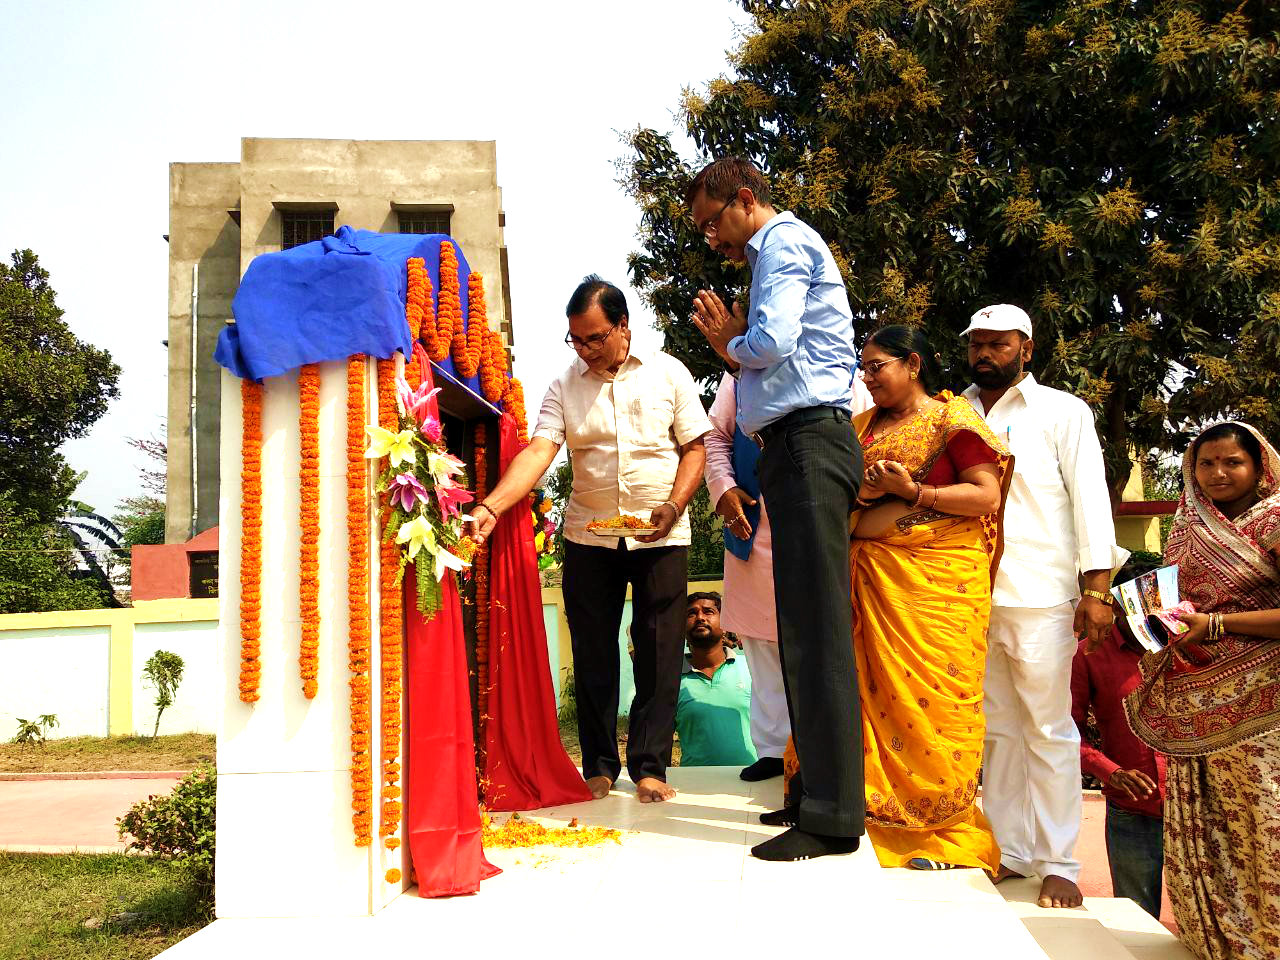 Dr.Bhupendra Madhepuri , Zila Parishad Adhyaksha Manju Devi and others paying homage to martyrs at Shahid Park Madhepura.